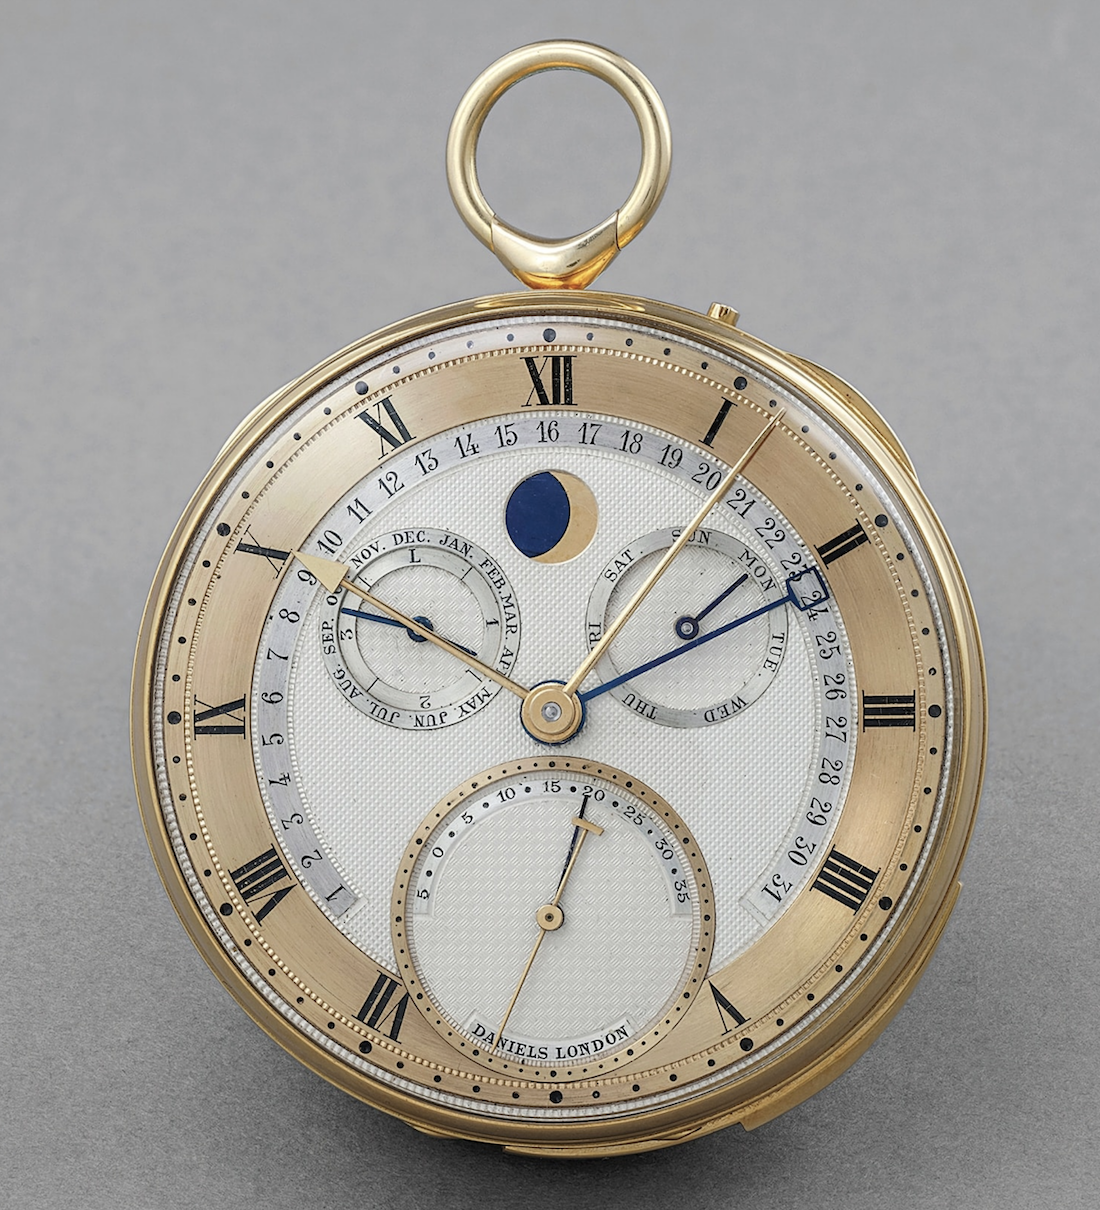 George Daniels Pocket Watch Phillips Watches